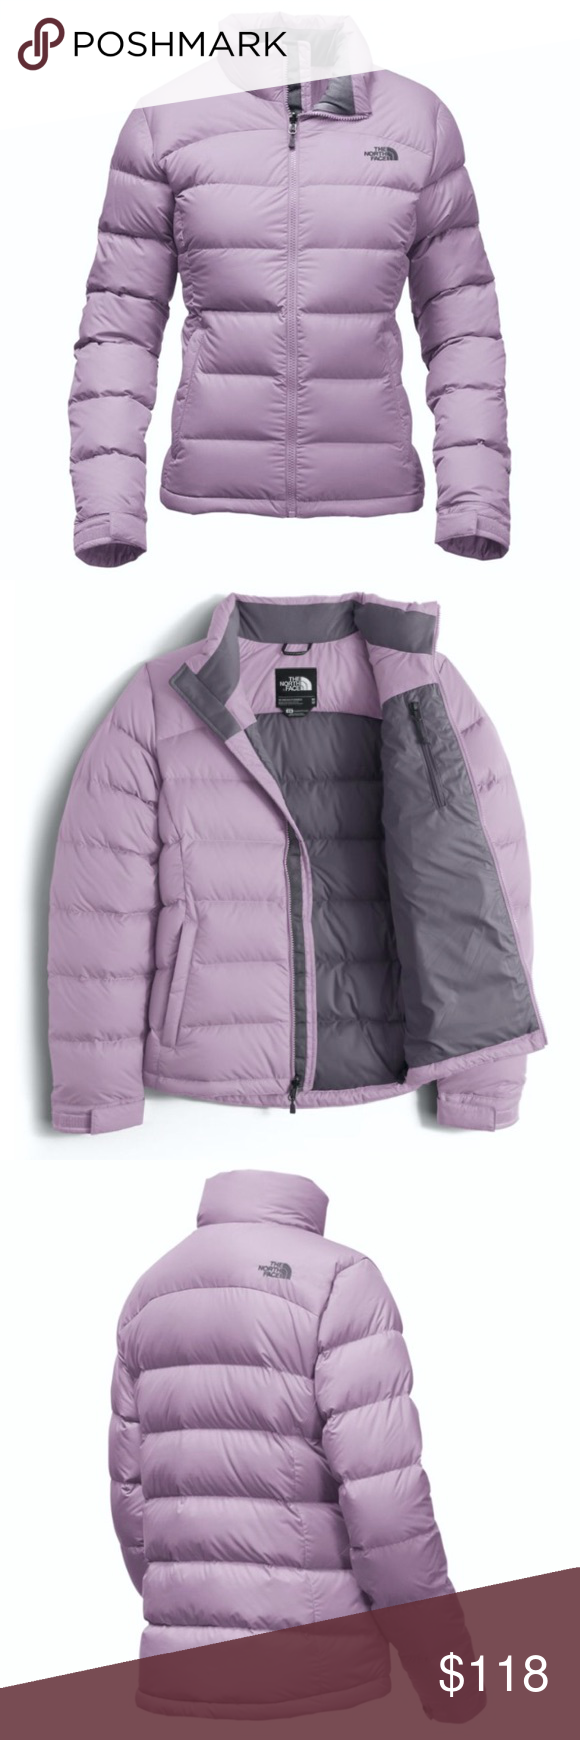 NORTH FACE Nuptse JACKET Puffer Coat Puff 700 Down BRAND NEW!! Women s  Size  Small. Color  Light Purple Grey. Retail   288.00. The North Face  Jackets   ... 03581409a